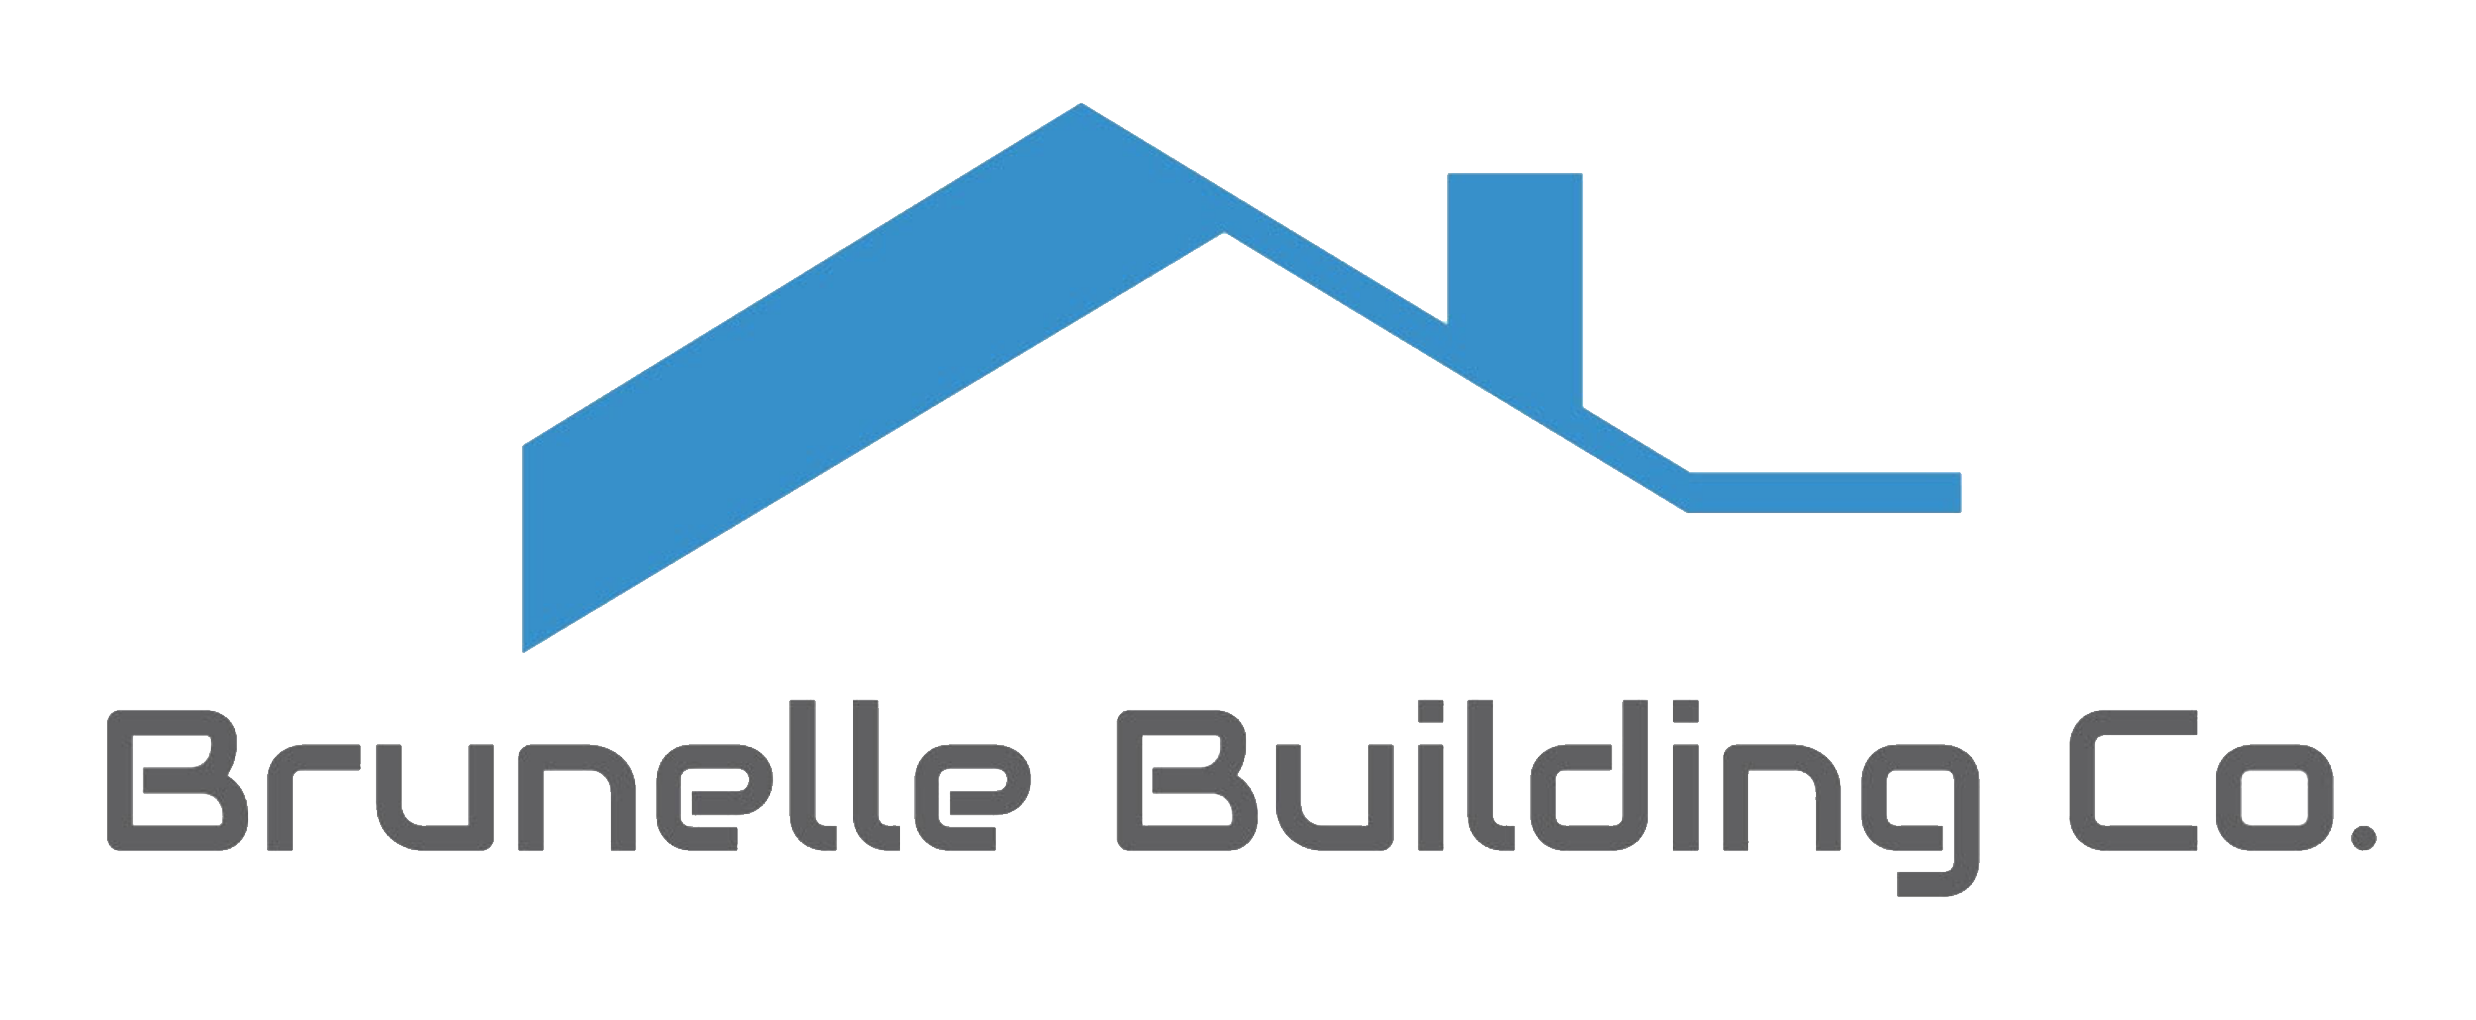 Brunelle Building Co. | All in One Construction Management Solution